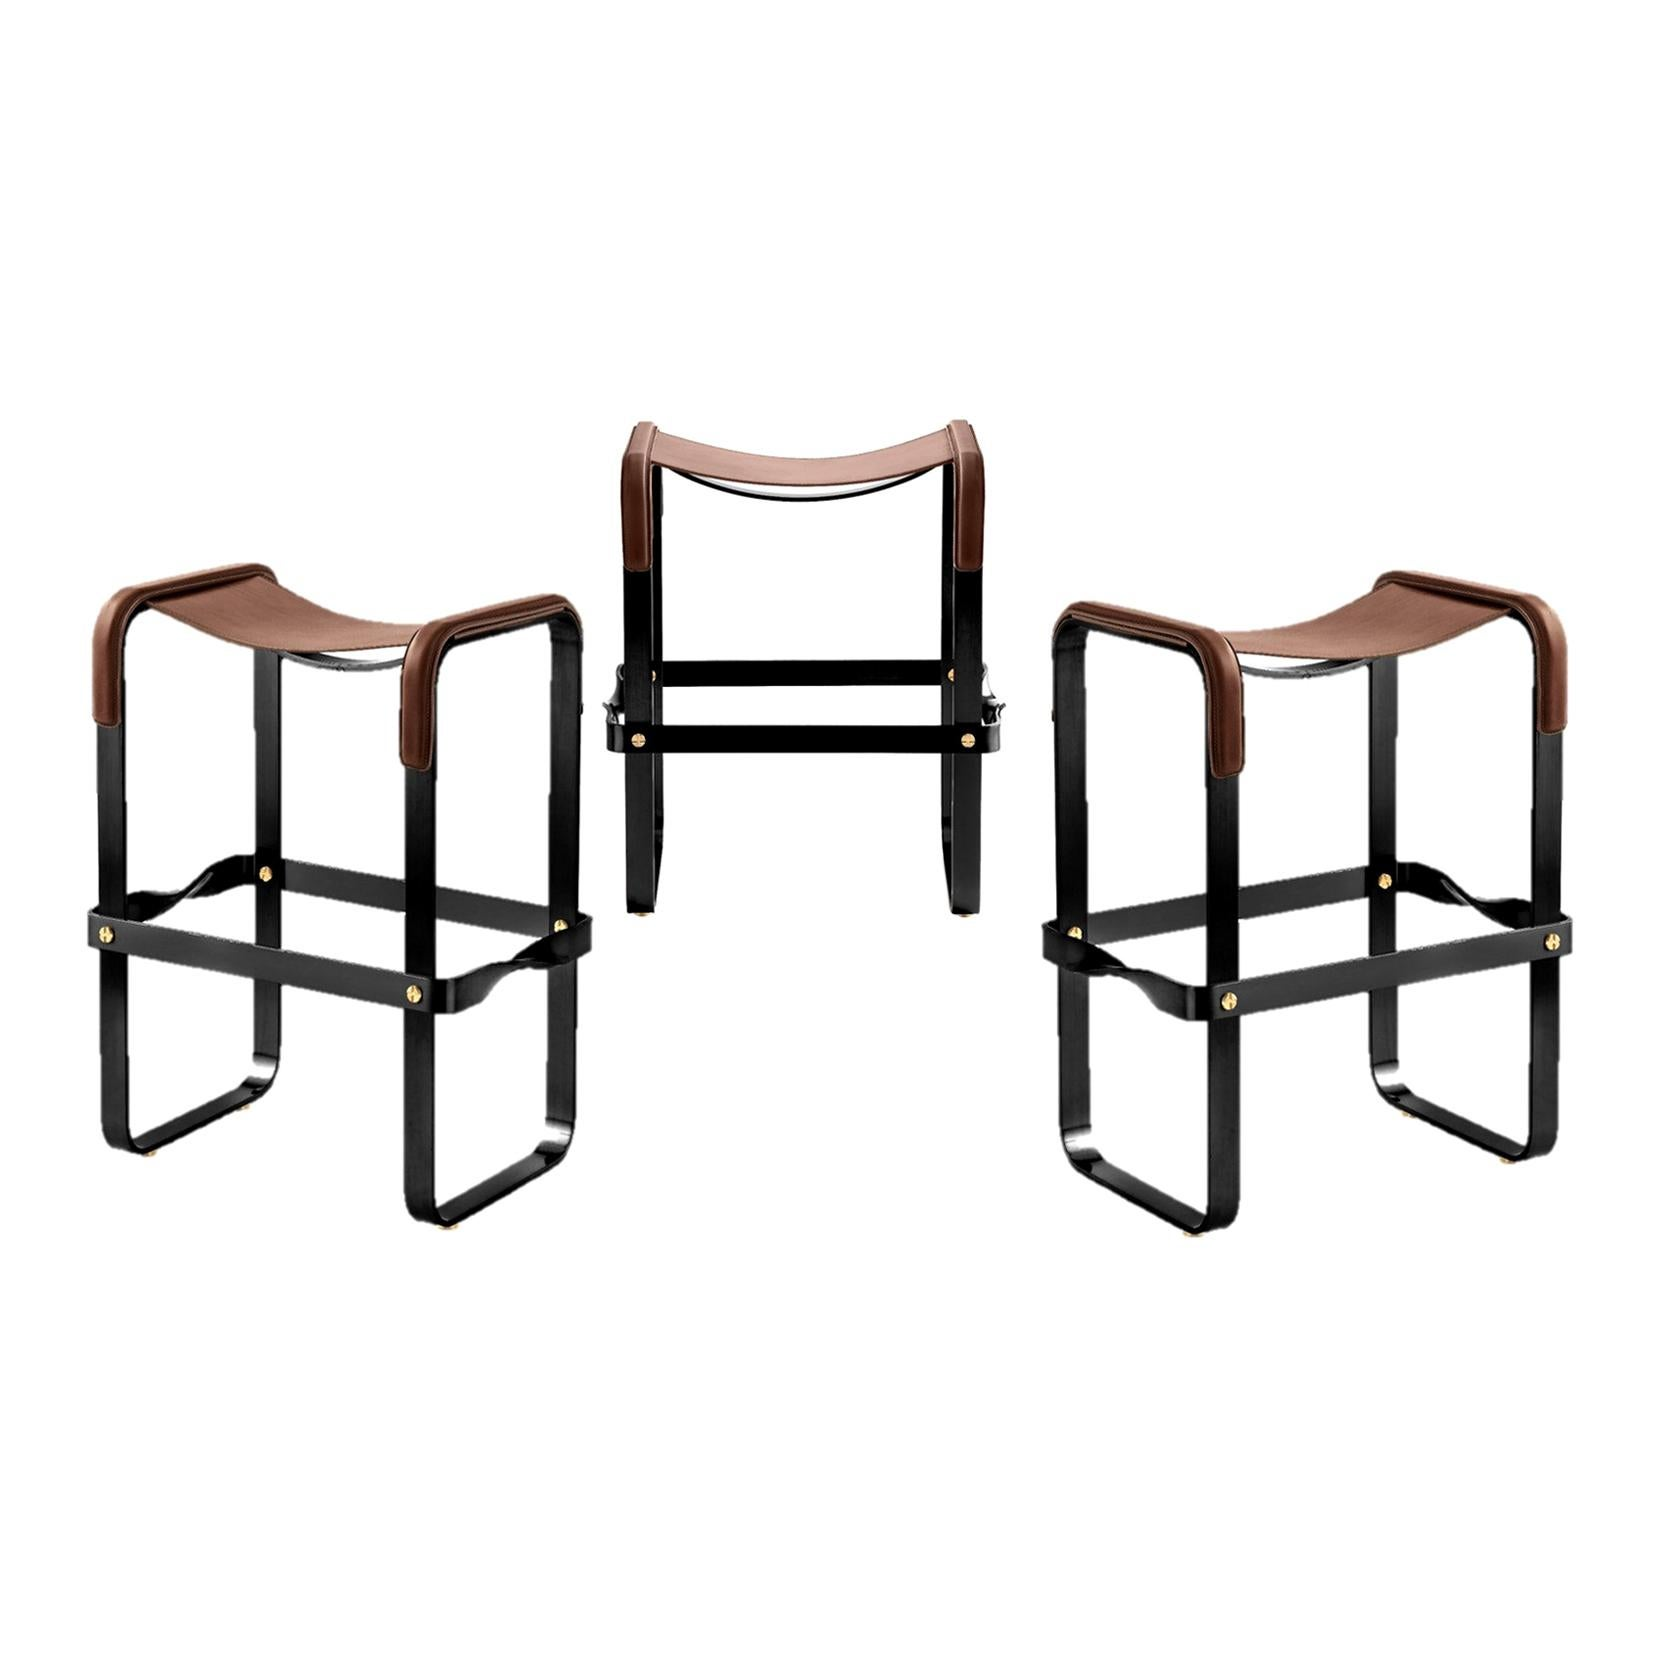 Set of 3 Kitchen Counter Stool, Contemporary Design, Black Steel & Brown Leather